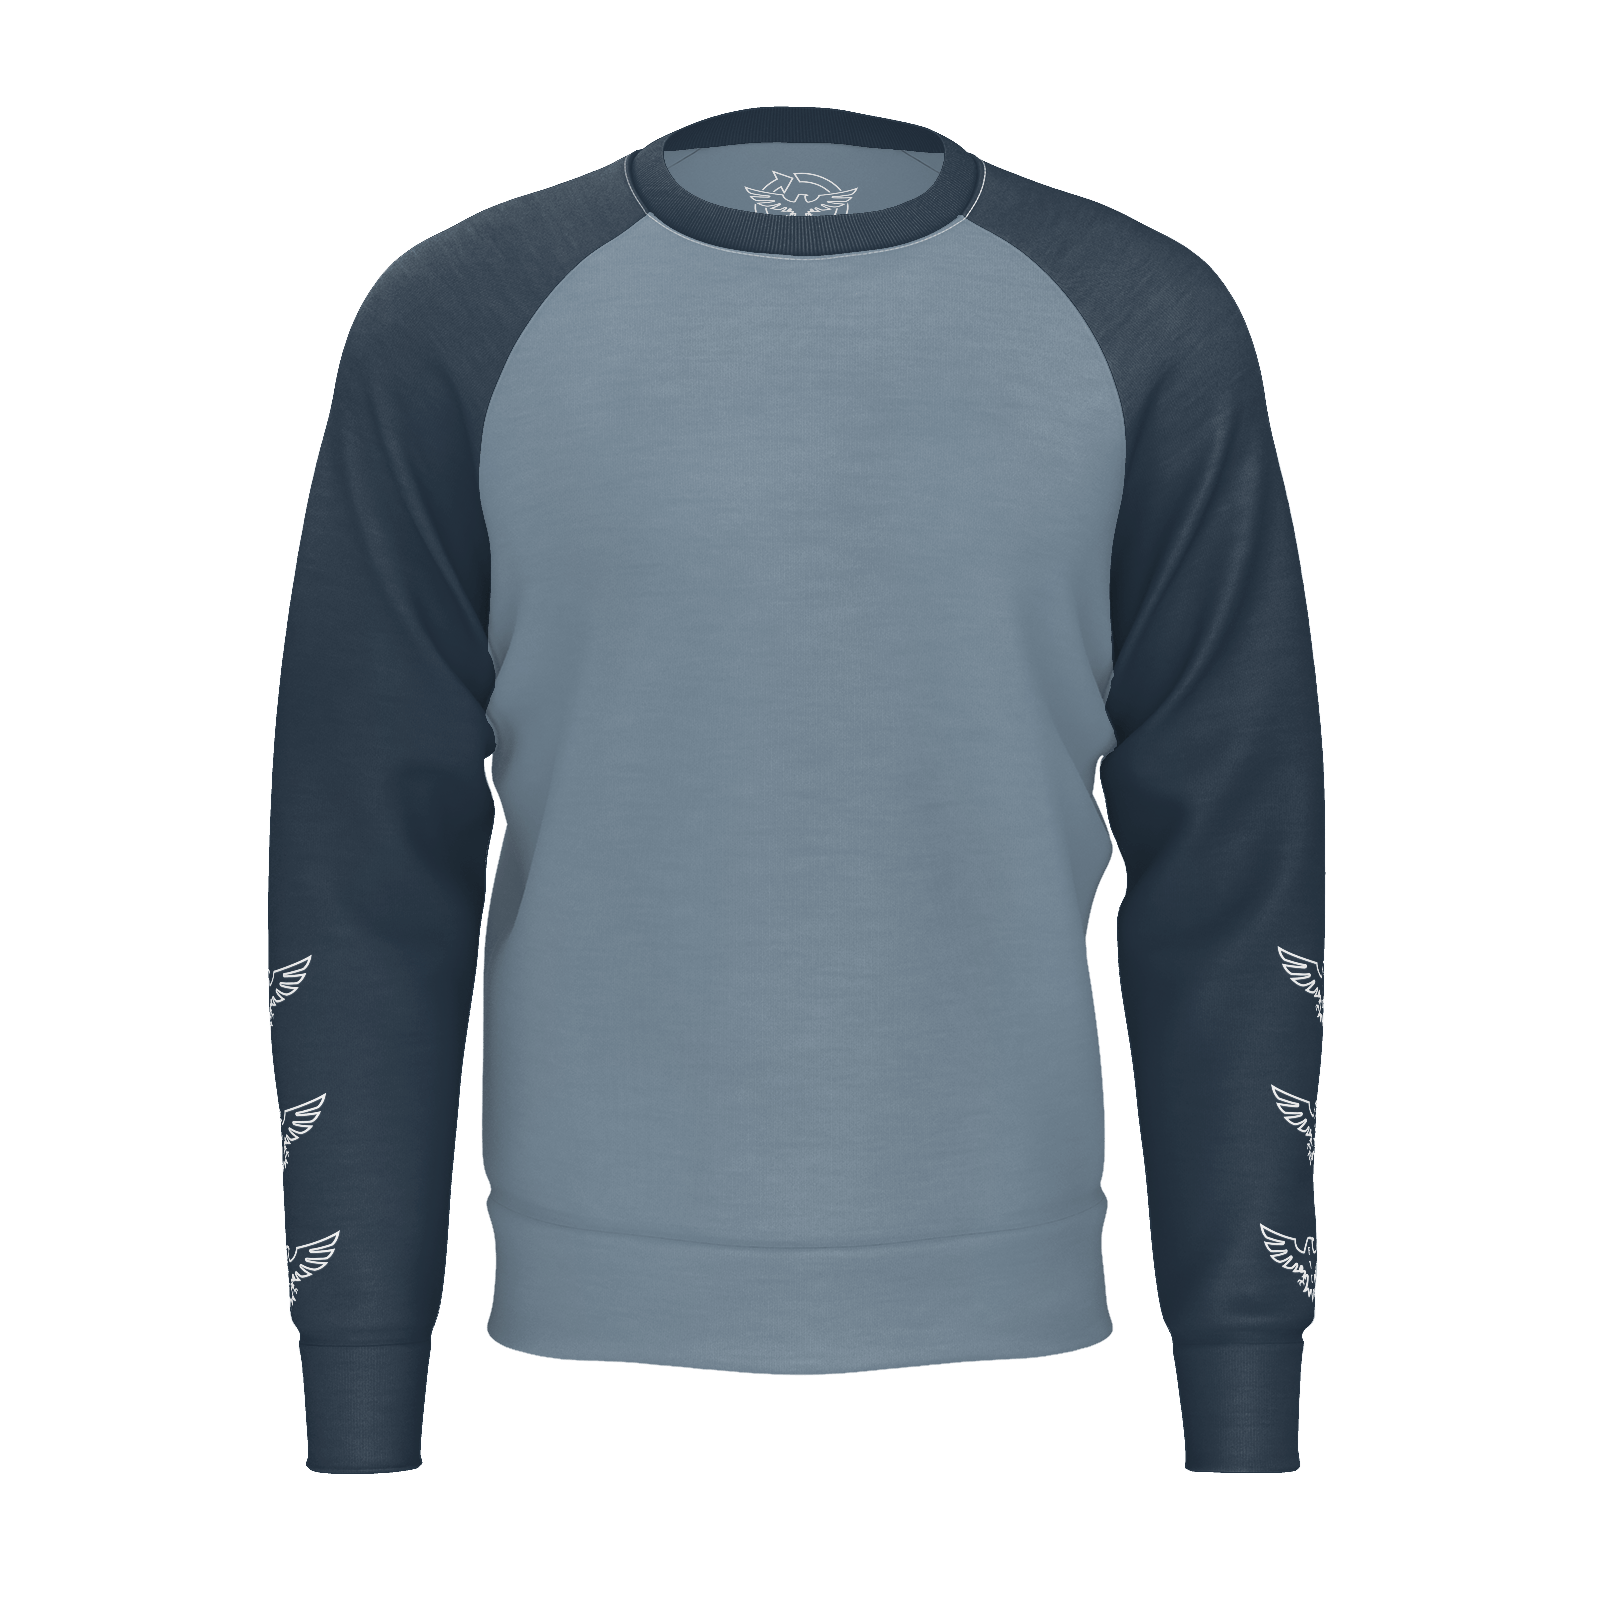 Men's FYC Logo Blue/Grey Sustainable Raglan Crewneck